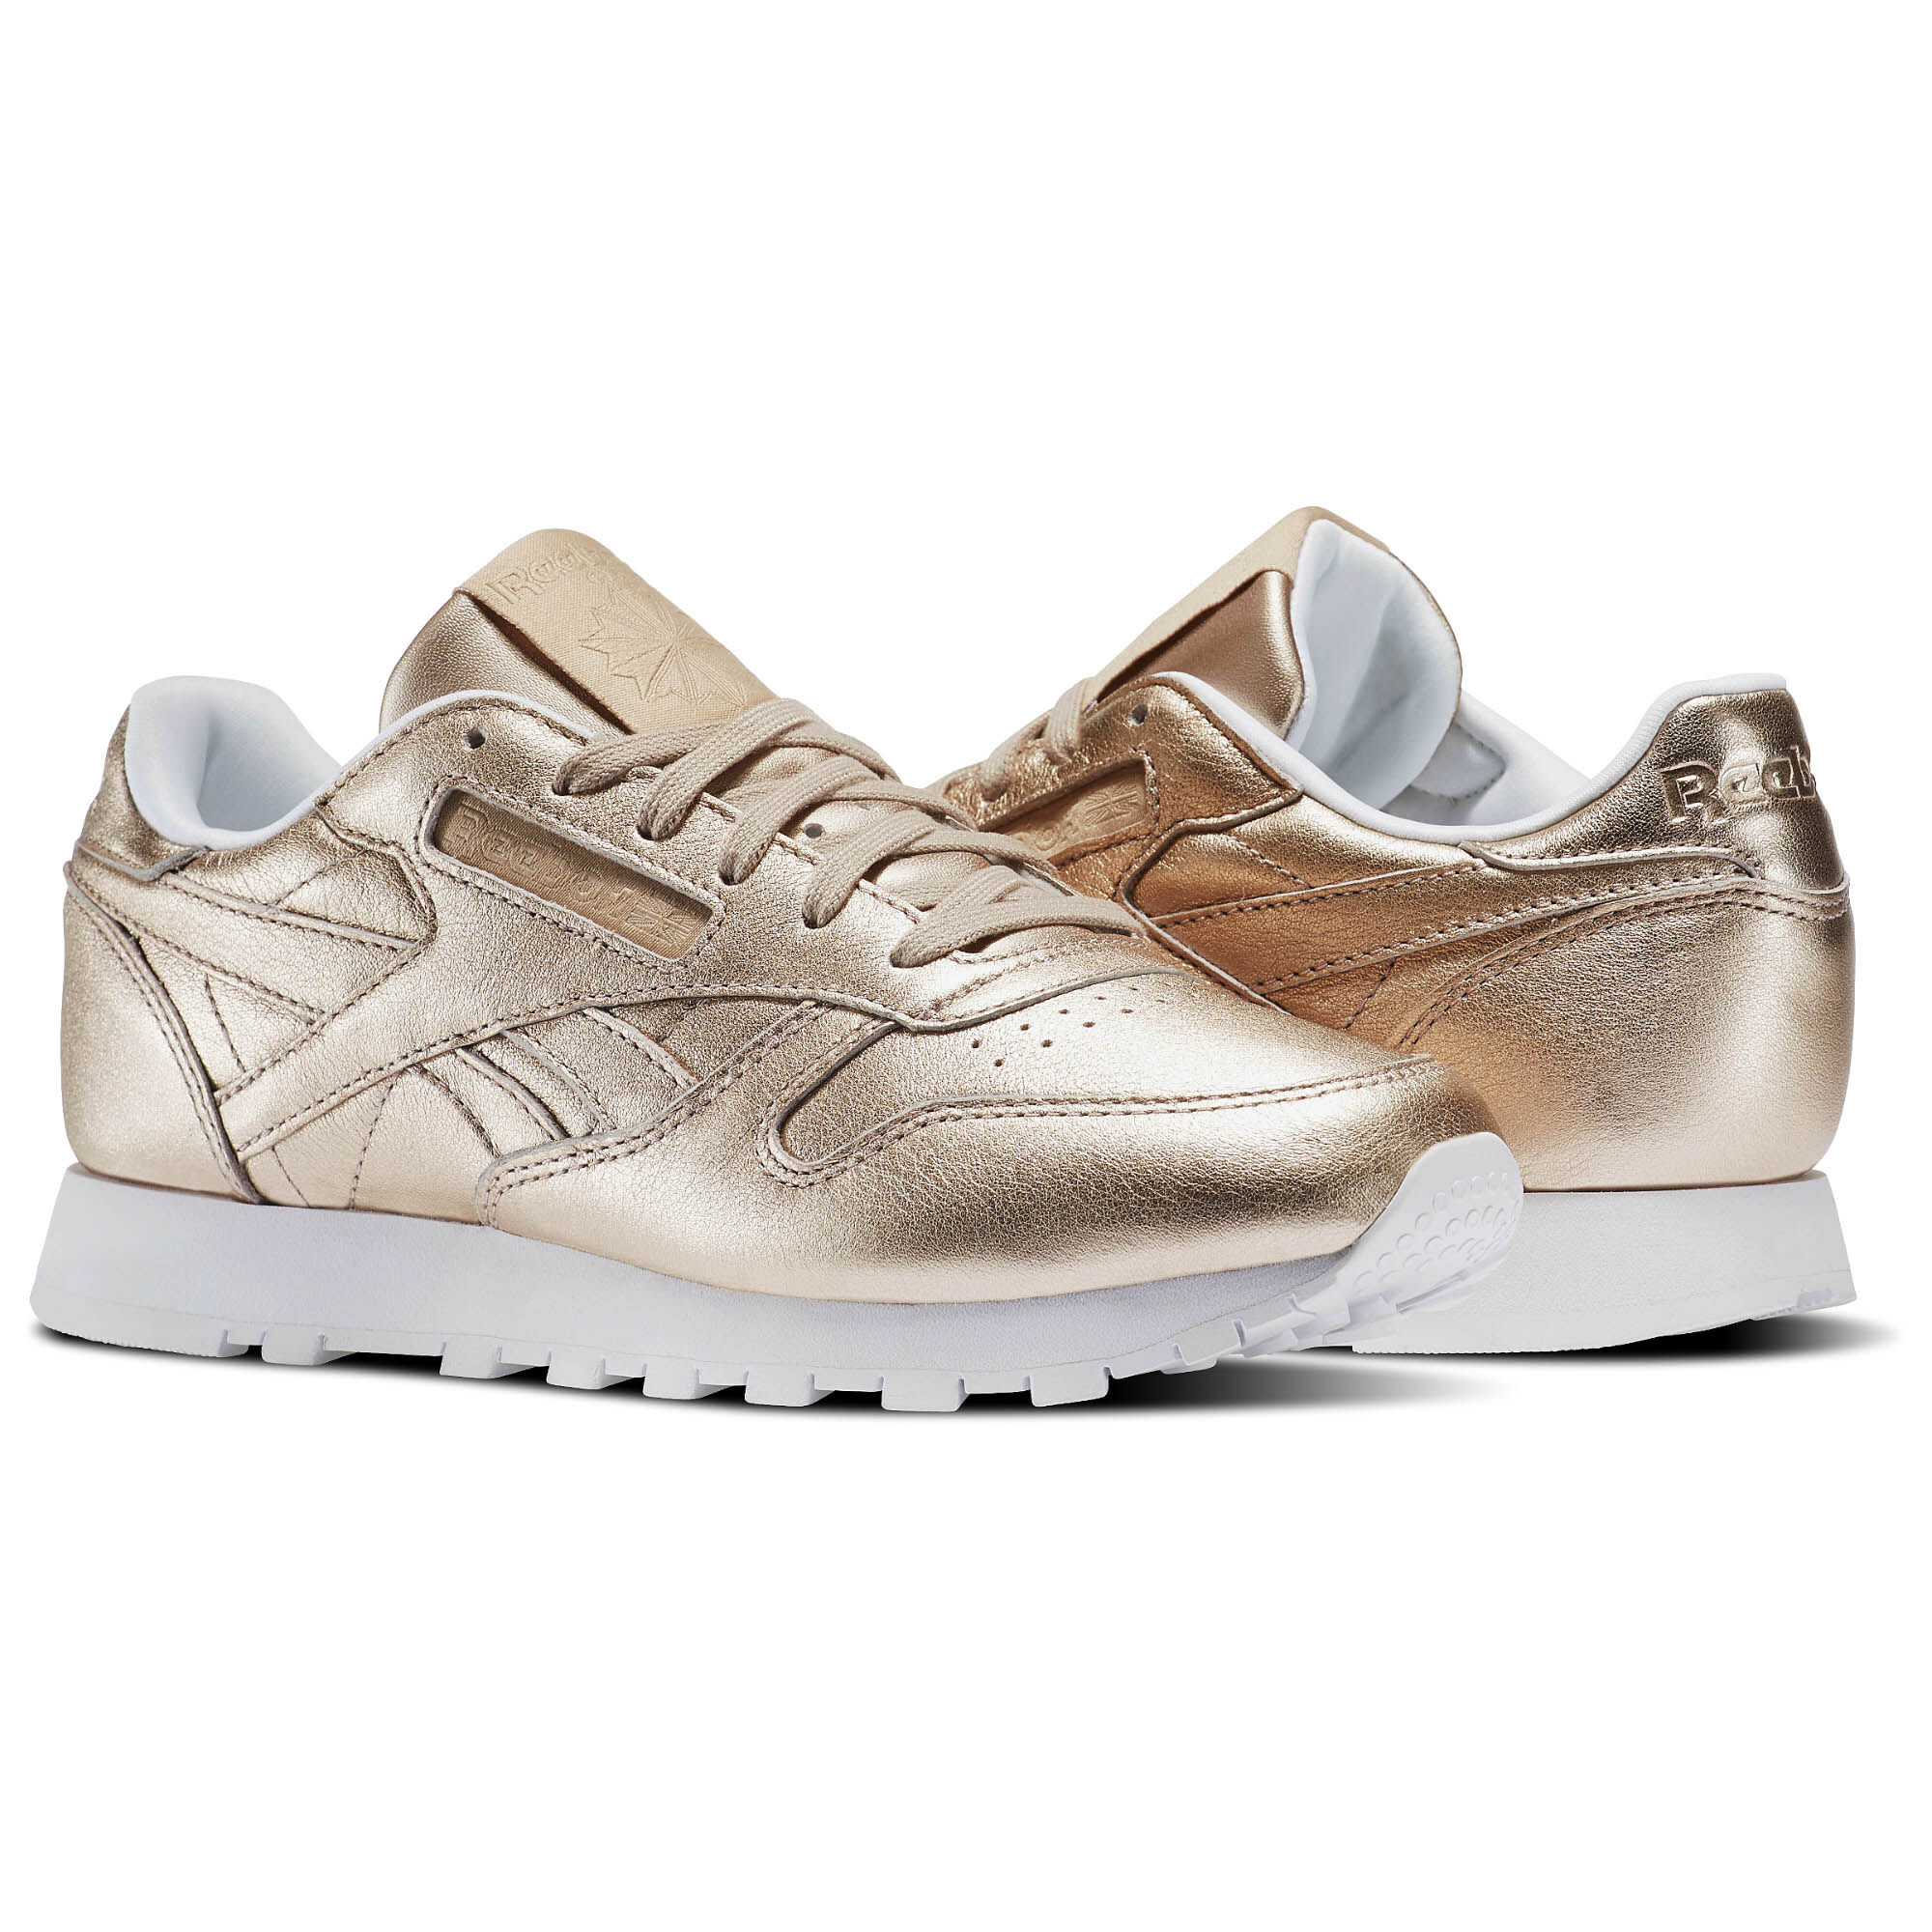 Reebok - Classic Leather Melted Metals Gold/Pearl Met-Peach/White BS7897